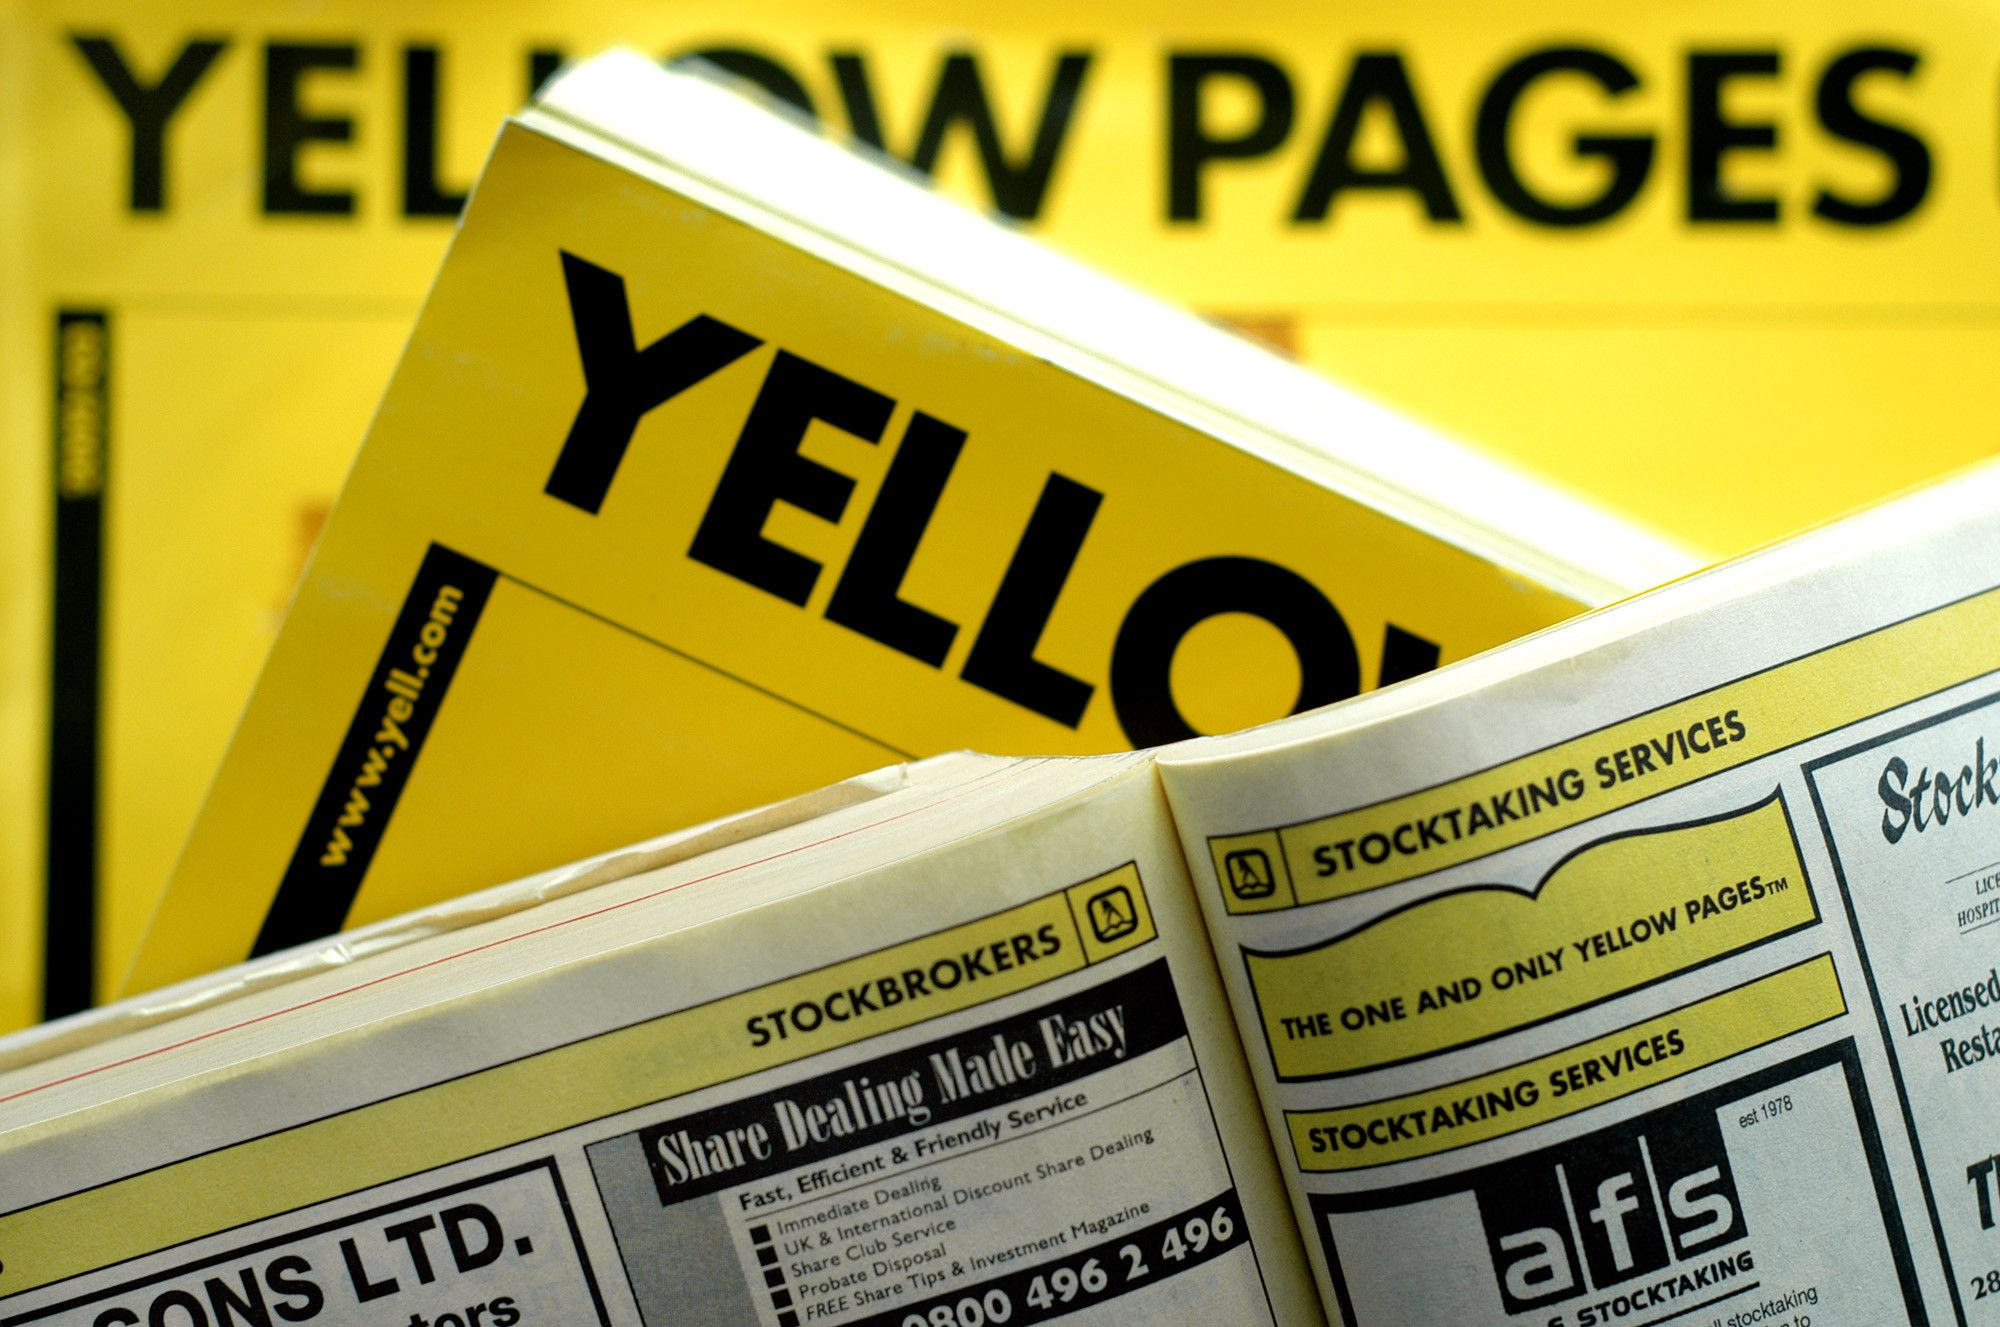 Yellow Pages Dubai Free Online Business Directory